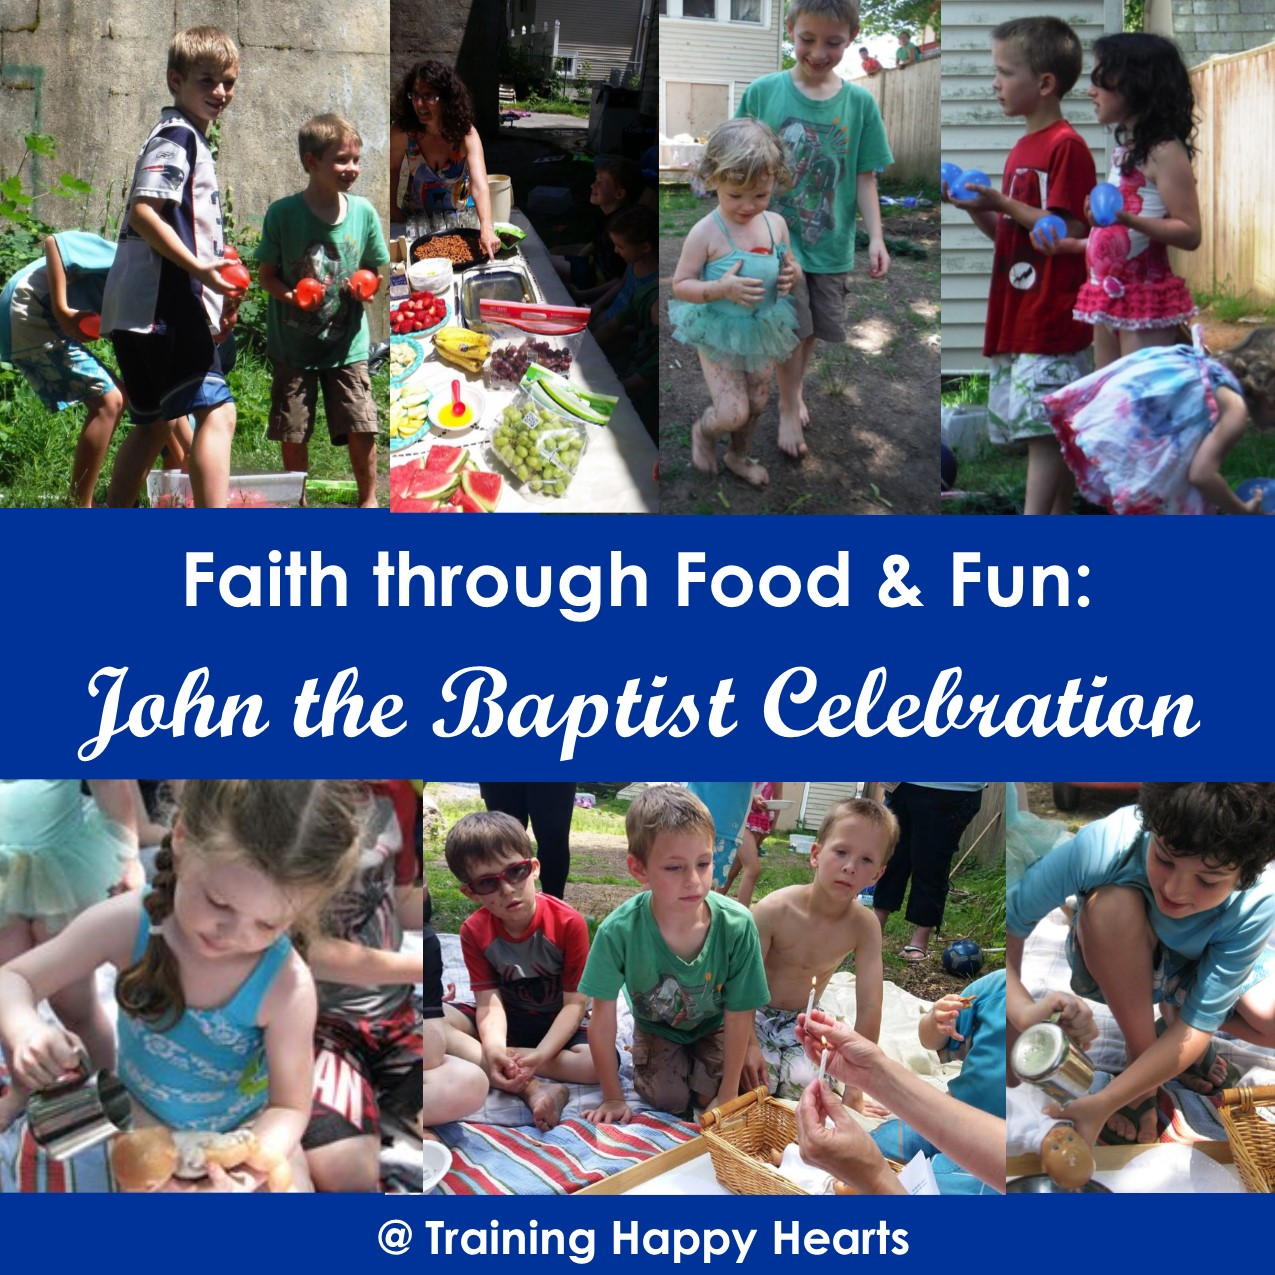 http://traininghappyhearts.blogspot.com/2015/06/john-baptists-life-in-food-and-water.html